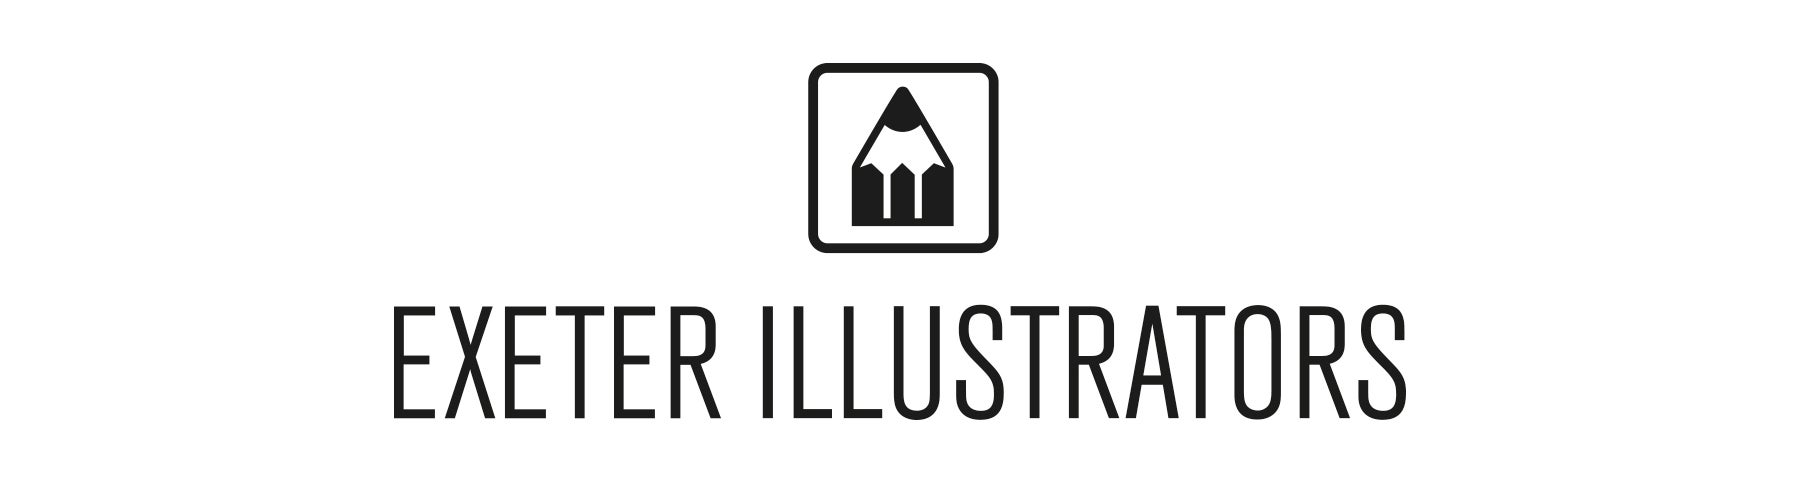 Exeter Illustrators